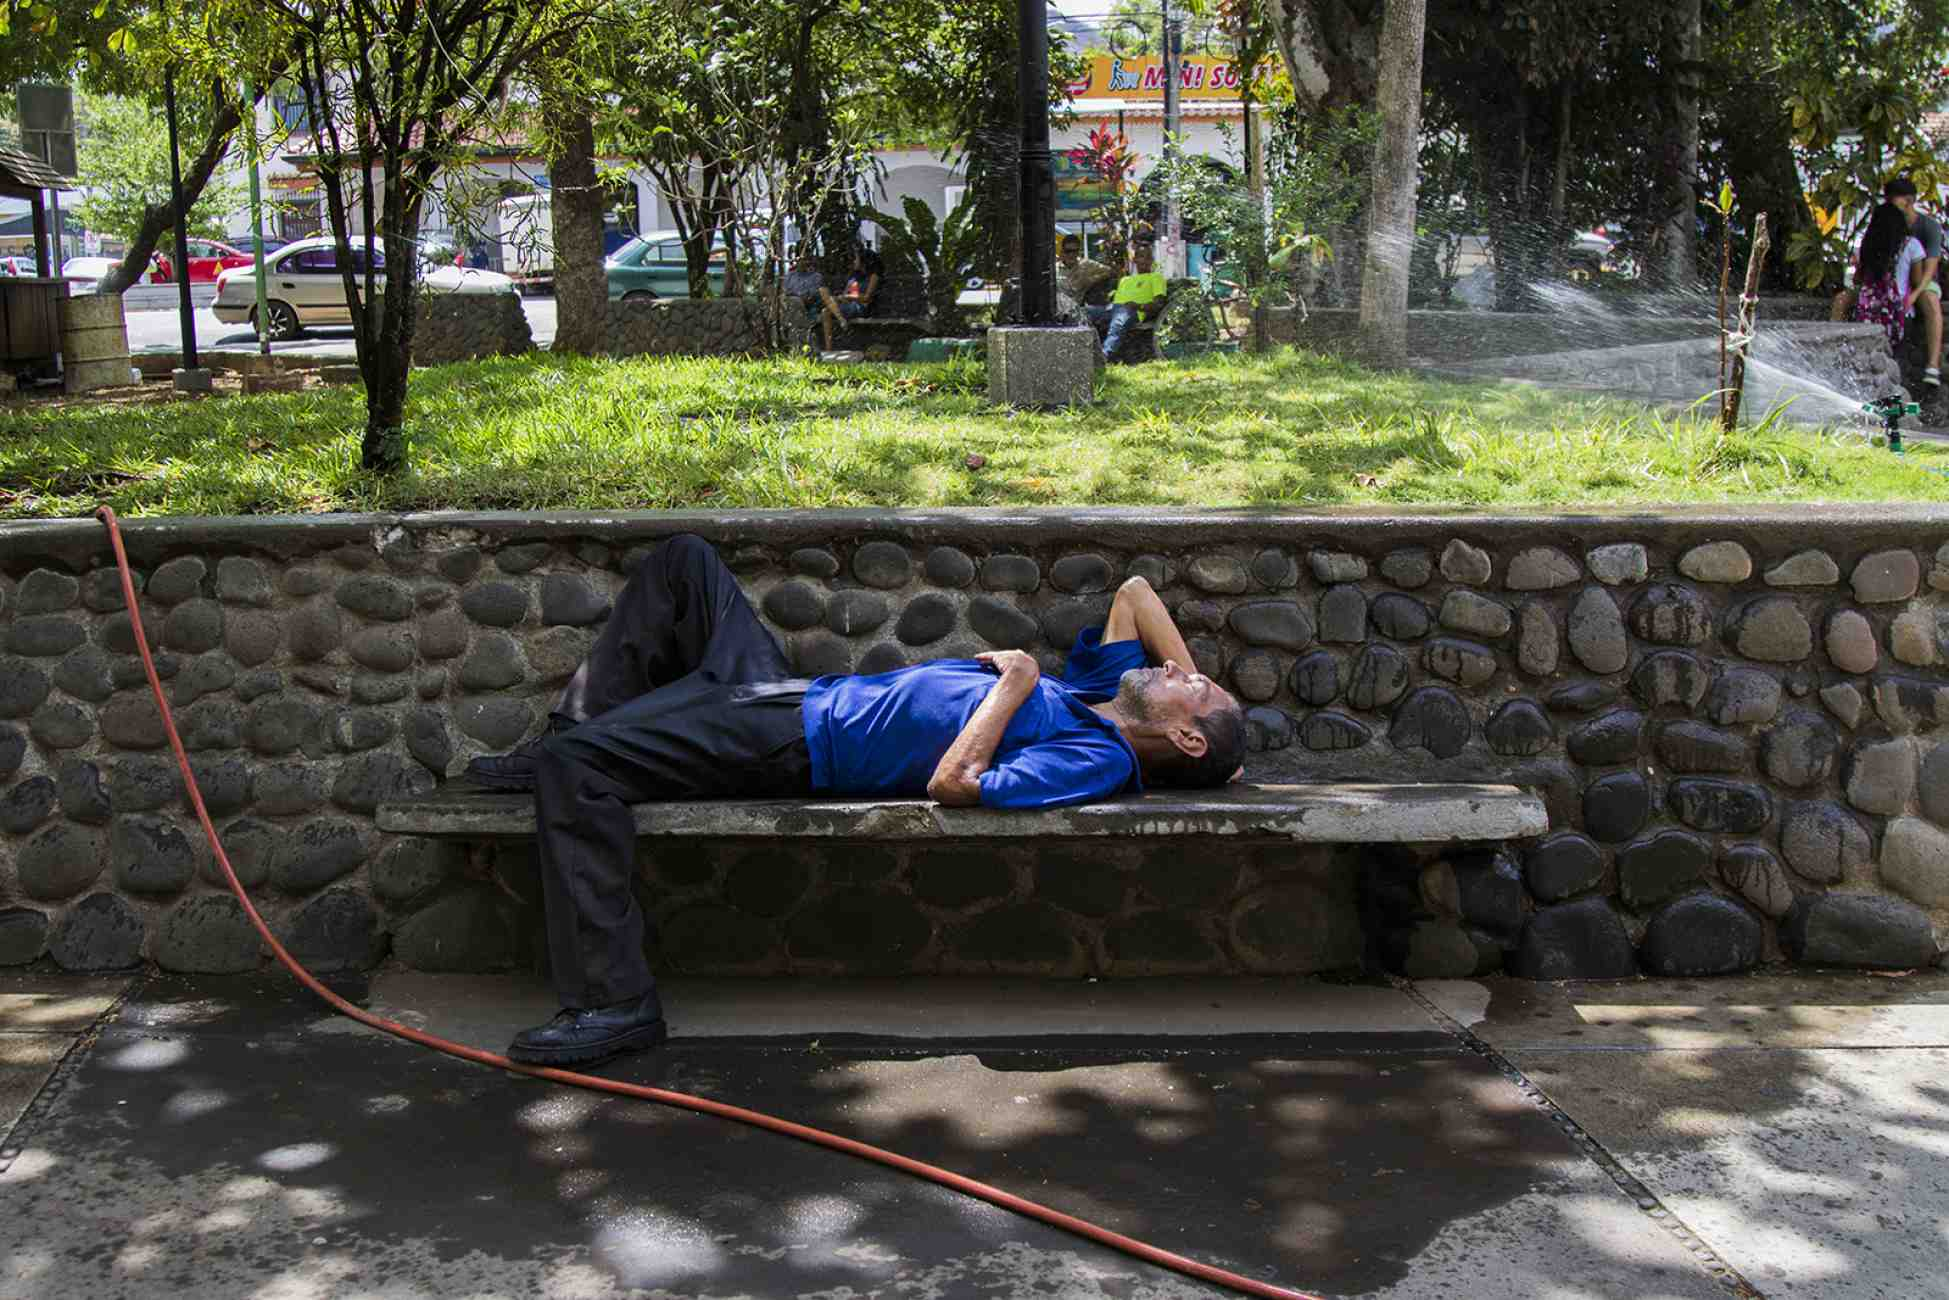 During the morning in March, a homeless man sleeps next to the water sprinklers in Recaredo Briceño park in Nicoya. Photo Ariana Crespo